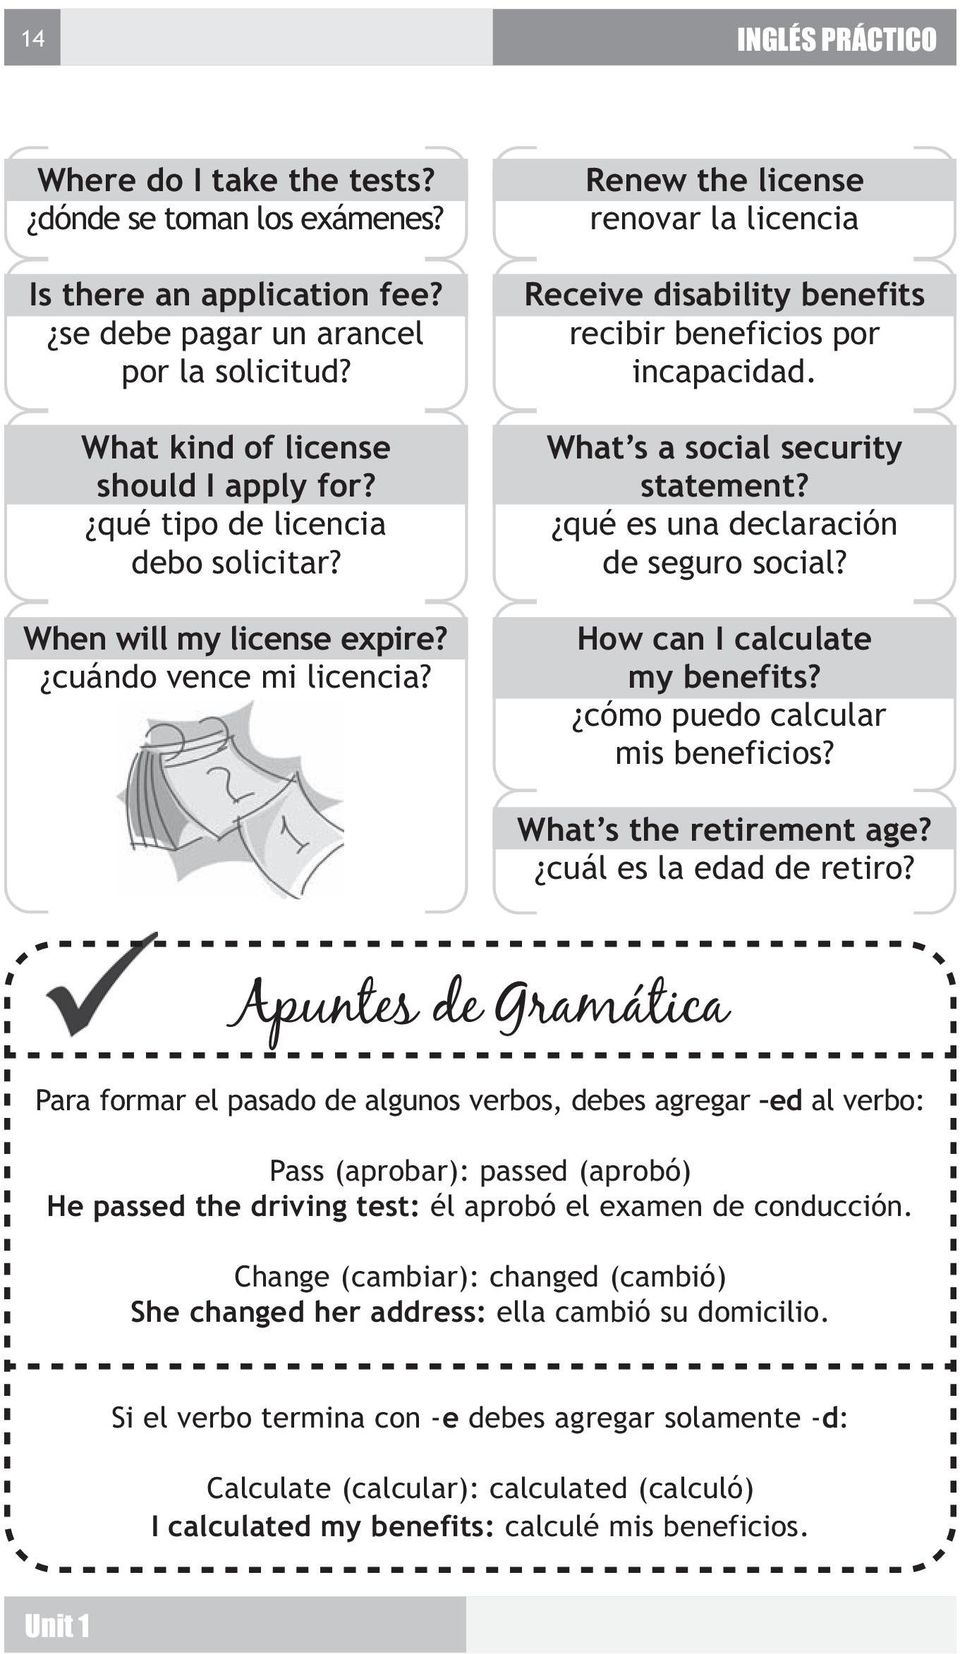 What s a social security statement? qué es una declaración de seguro social? How can I calculate my benefits? cómo puedo calcular mis beneficios? What s the retirement age? cuál es la edad de retiro?